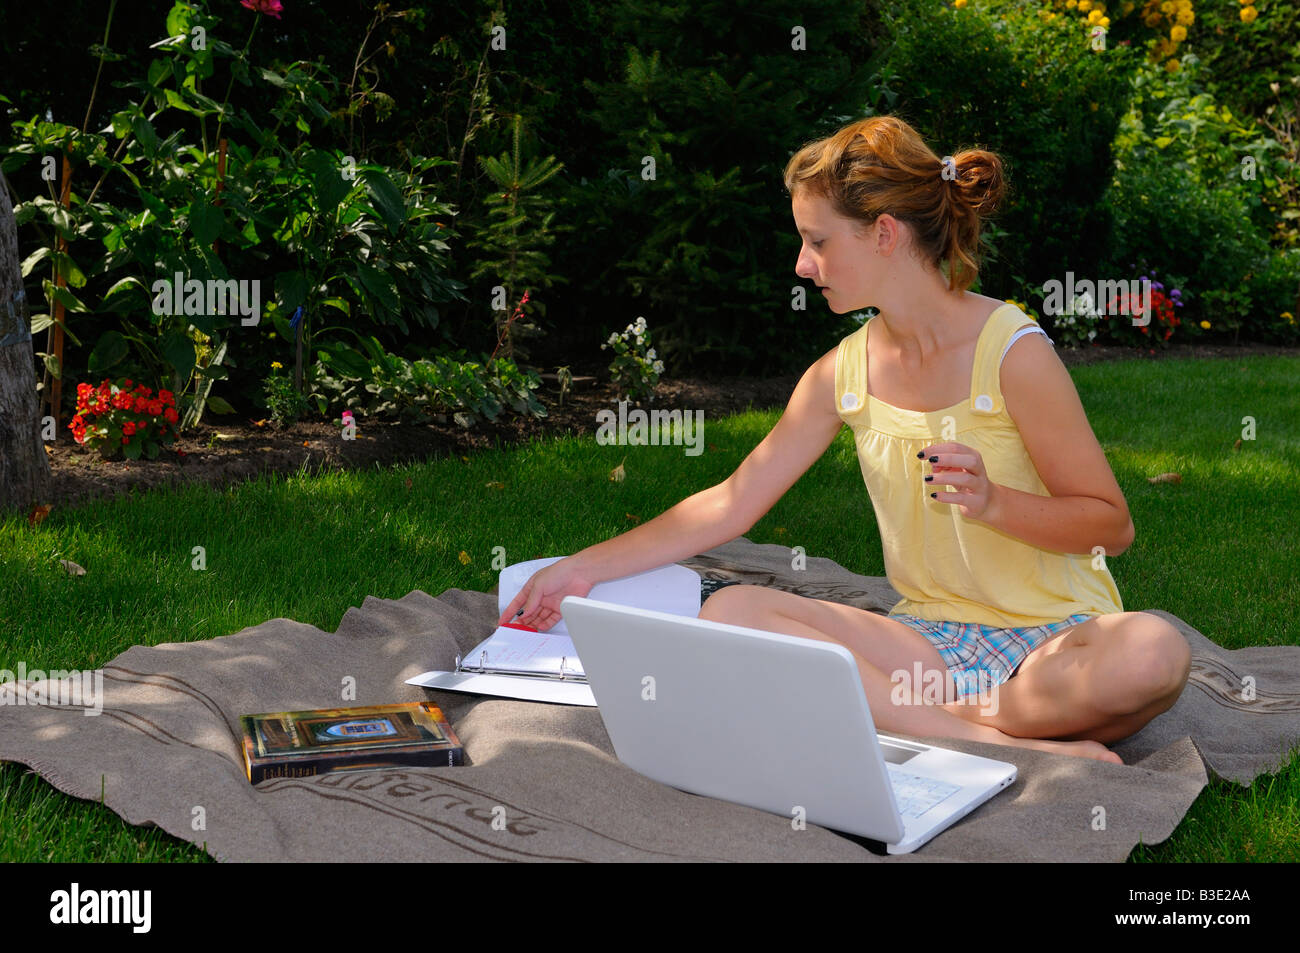 Teenager doing homework with laptop outdoors on a blanket in the back yard in the shade of a tree - Stock Image